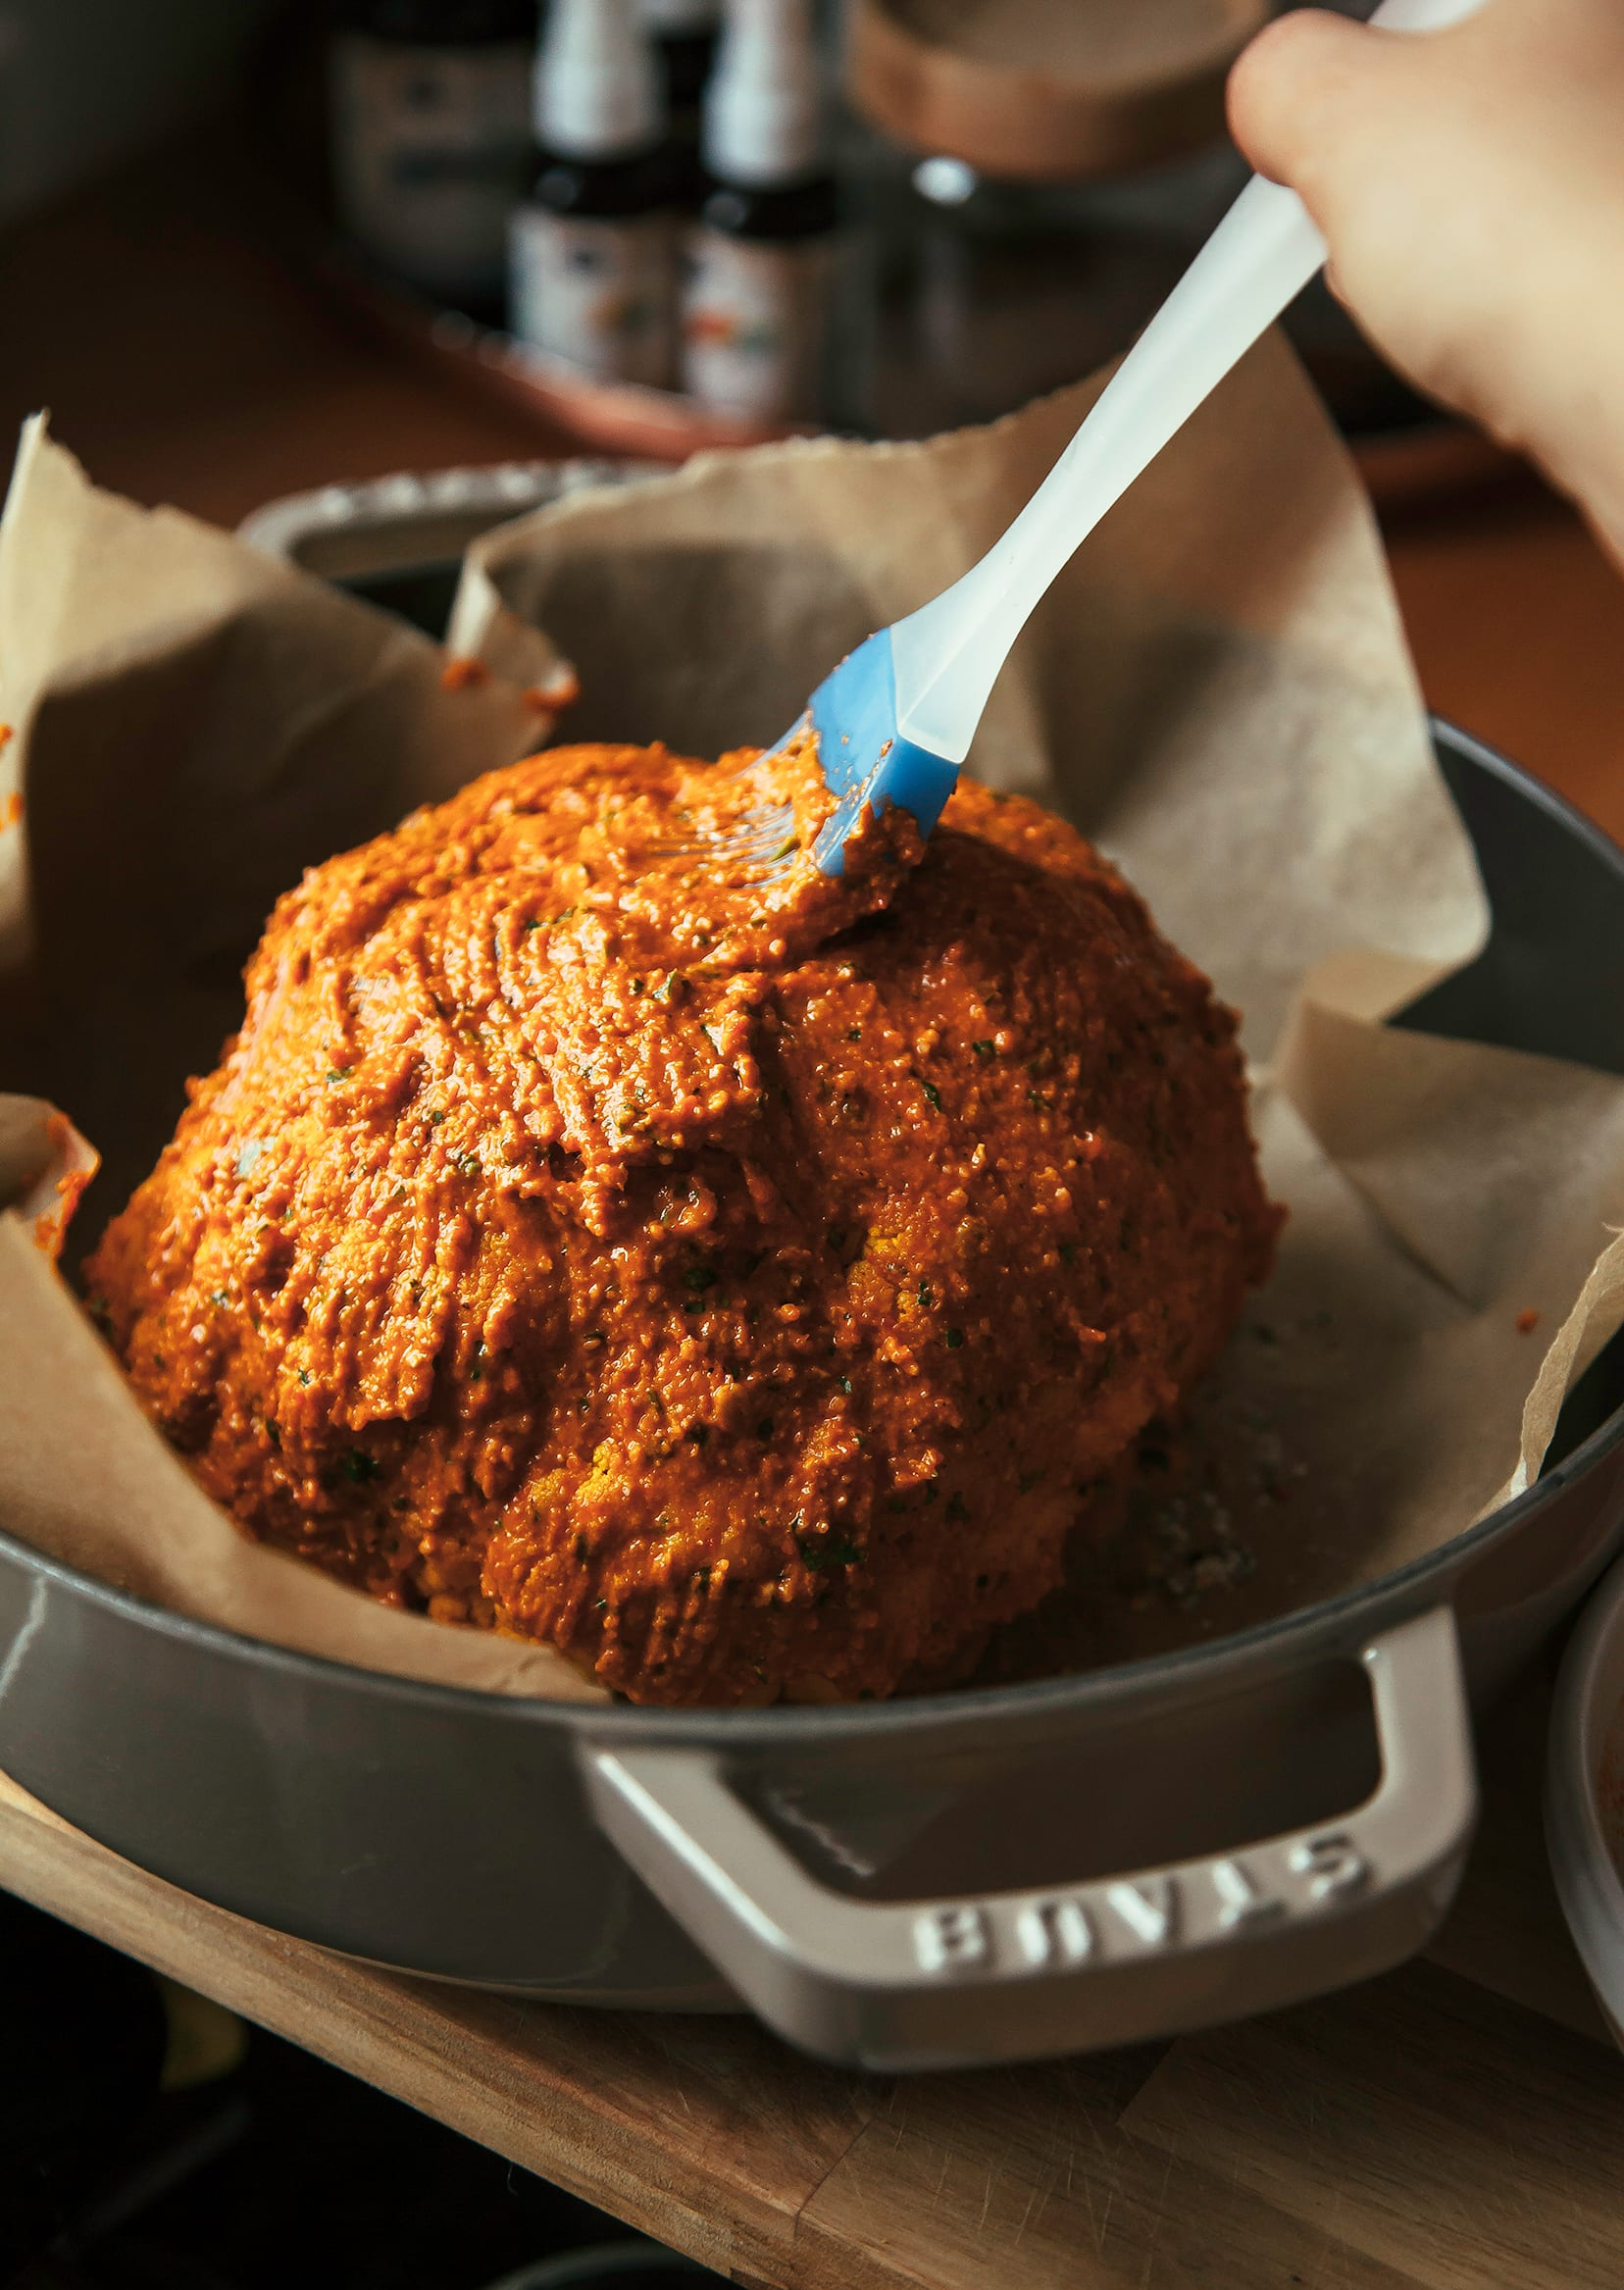 Image shows a hand brushing romesco onto the surface of a whole cauliflower.